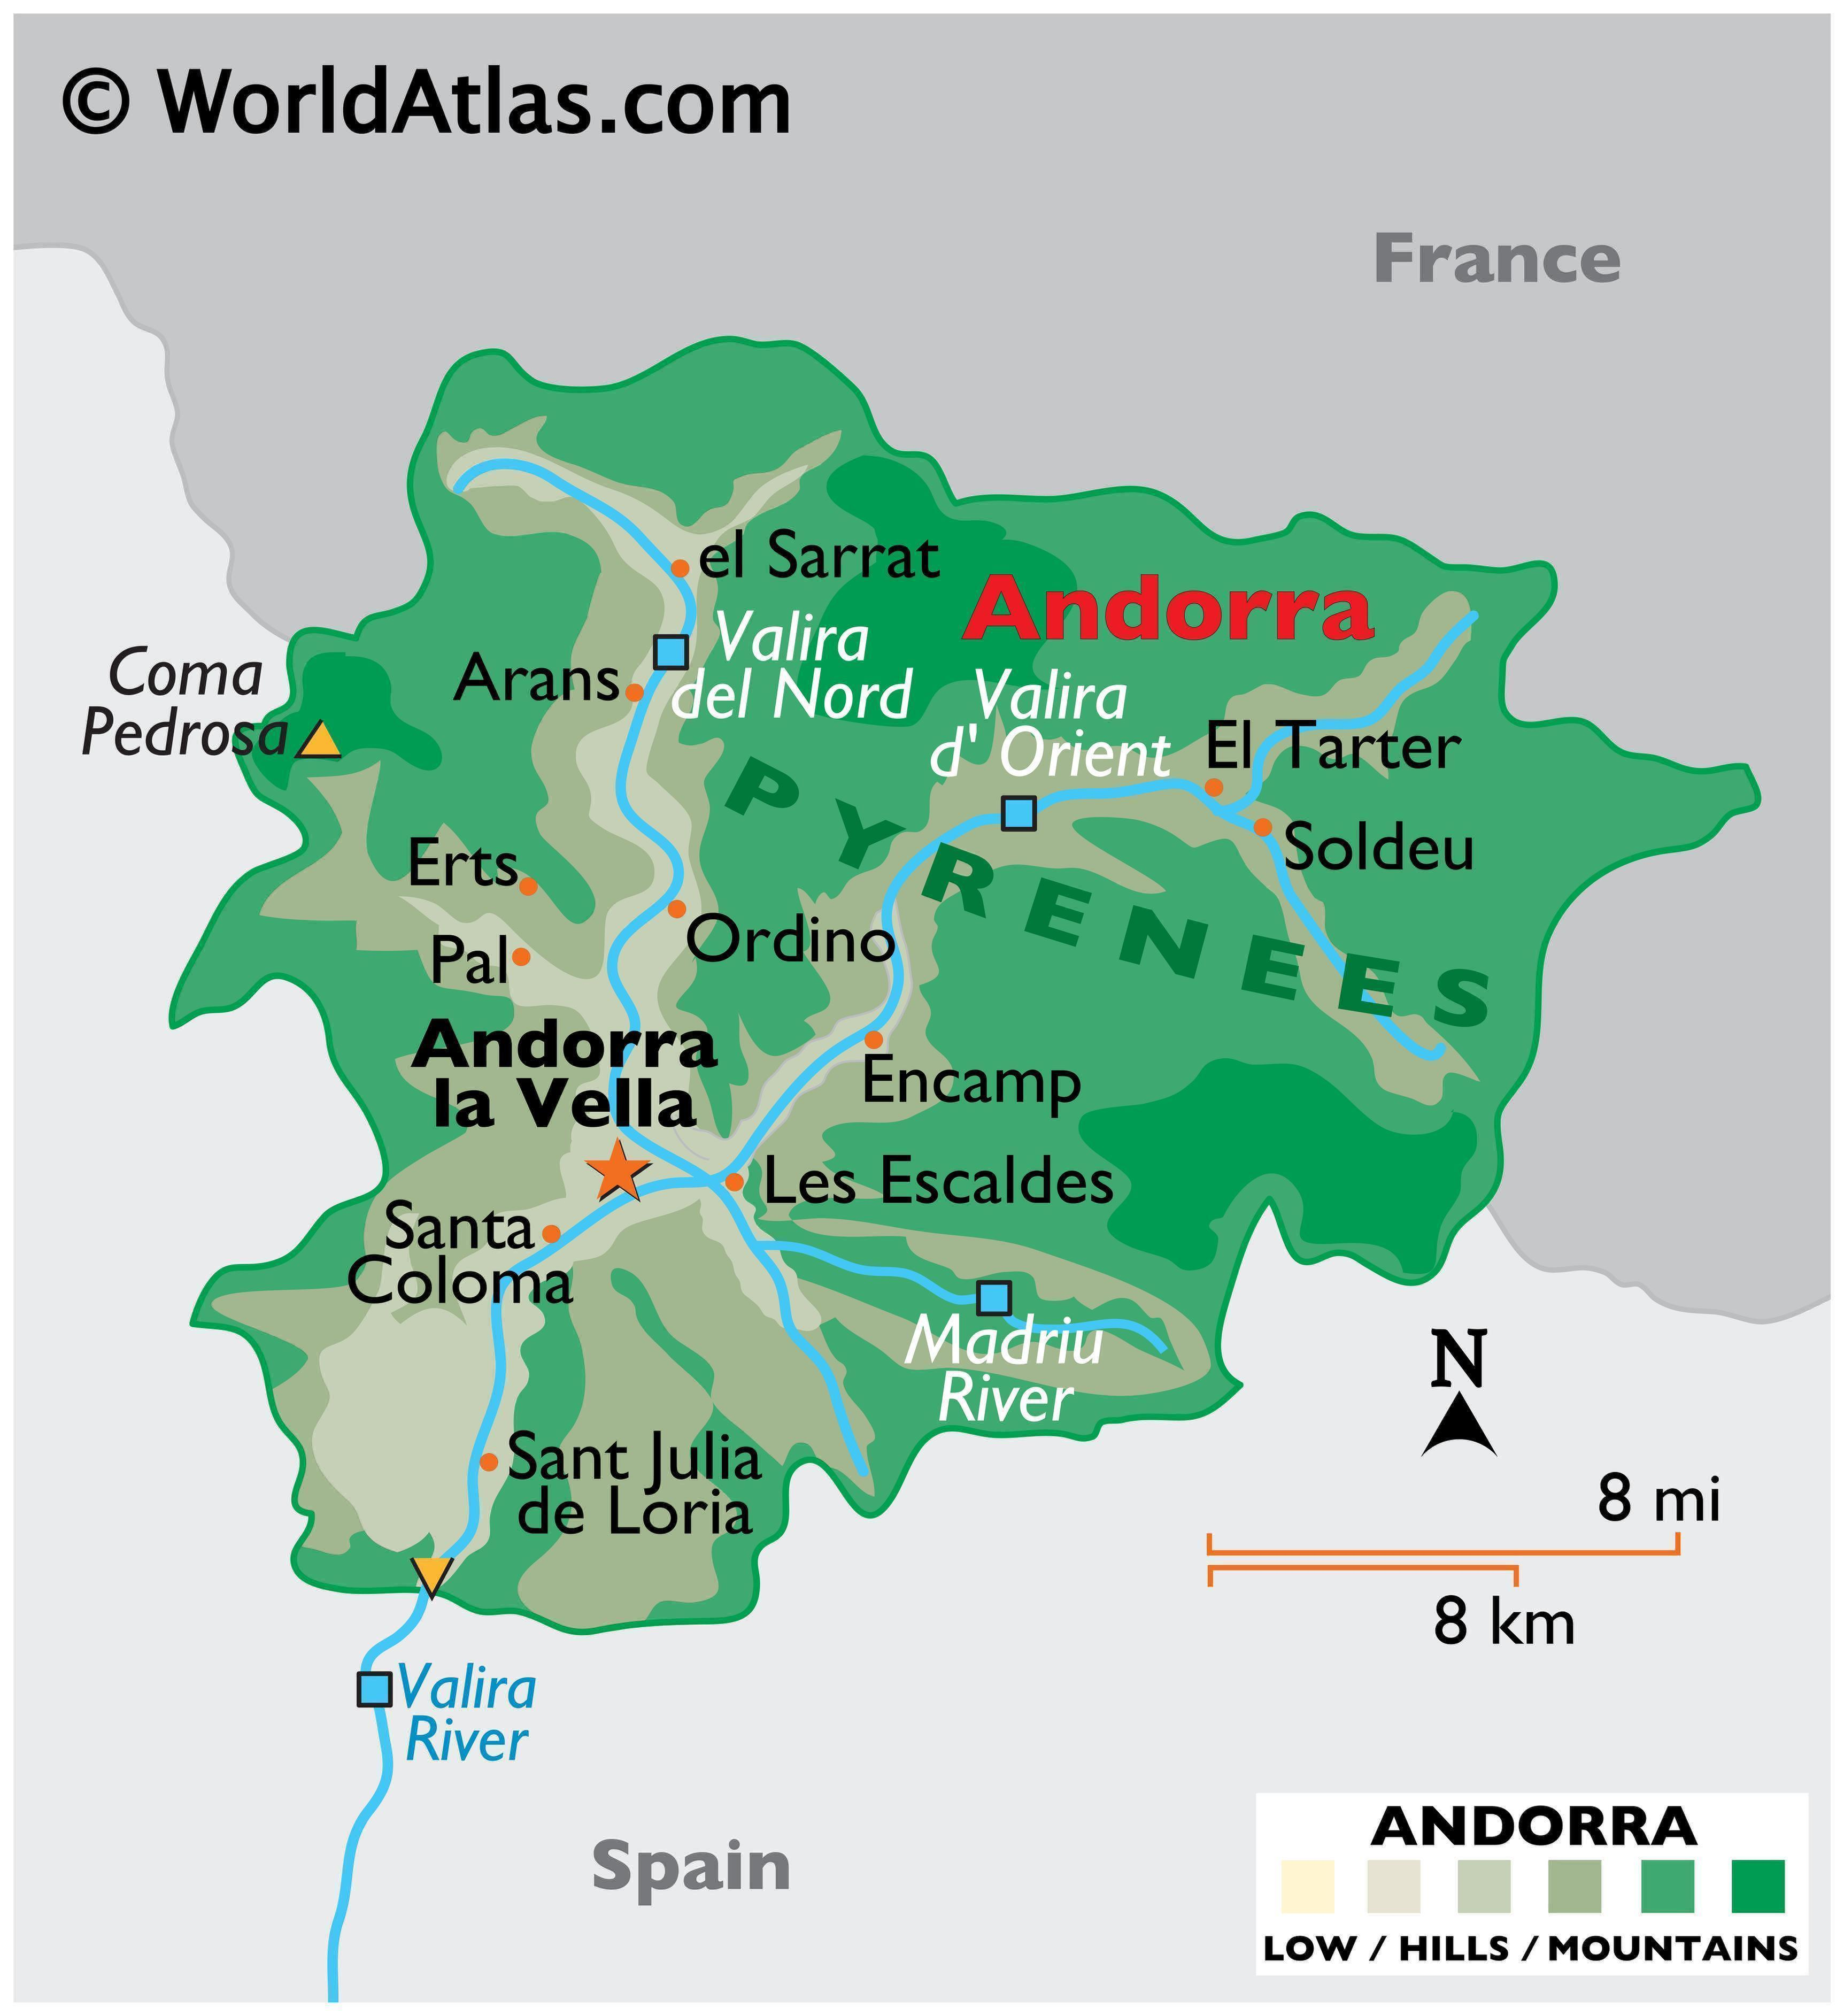 Physical Map of Andorra showing terrain, major rivers, extreme points, mountain ranges, important cities, international boundaries, etc.